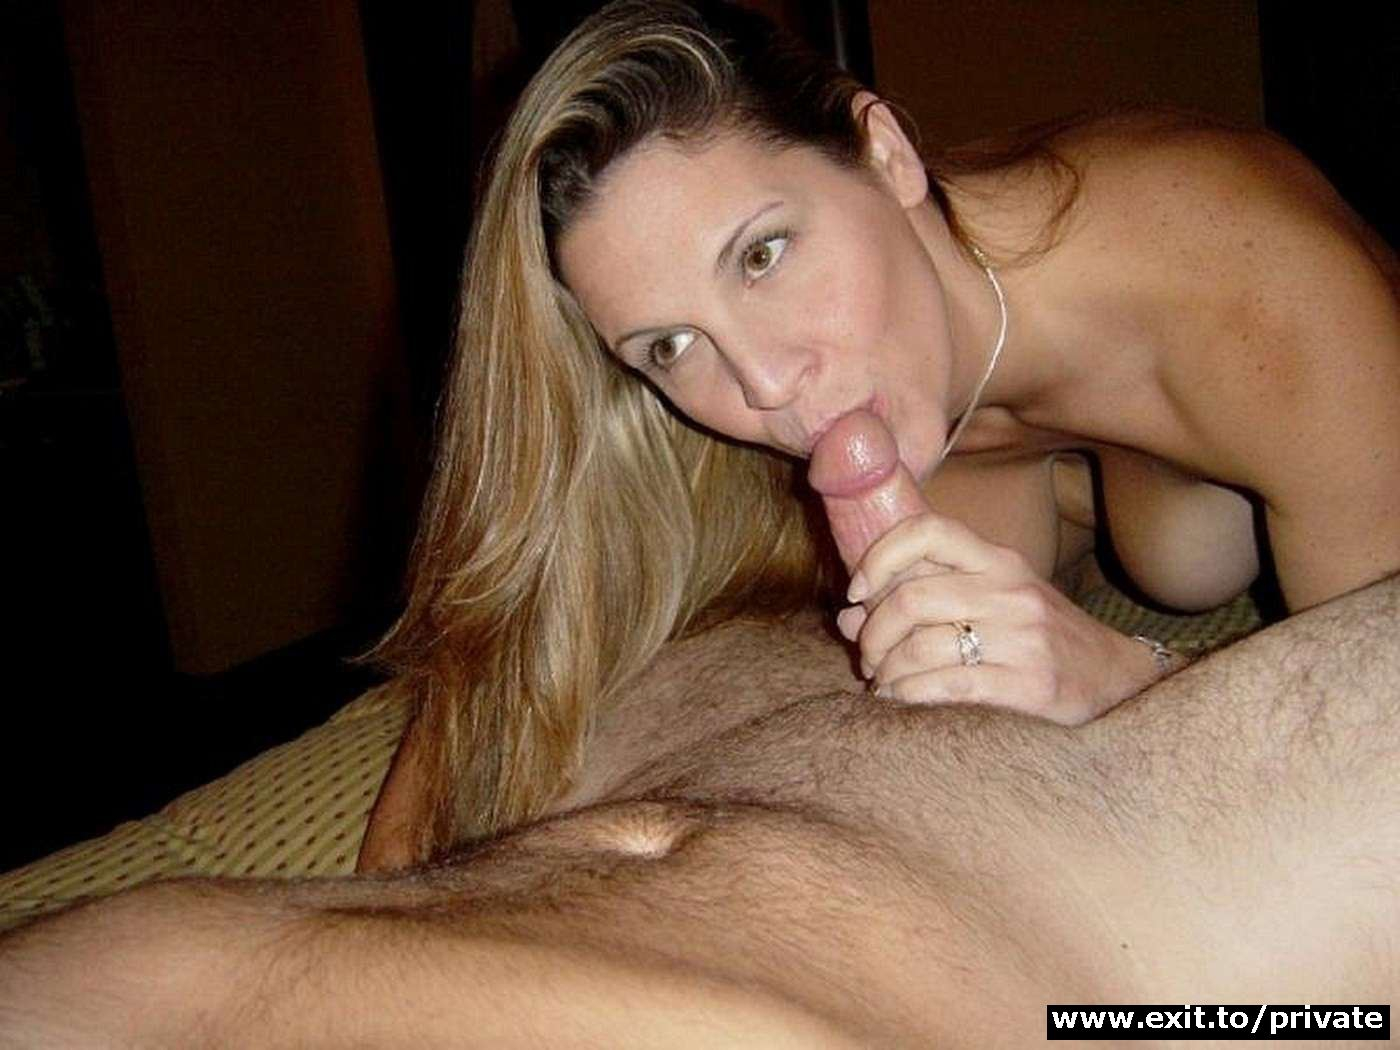 On blowjob cum wives